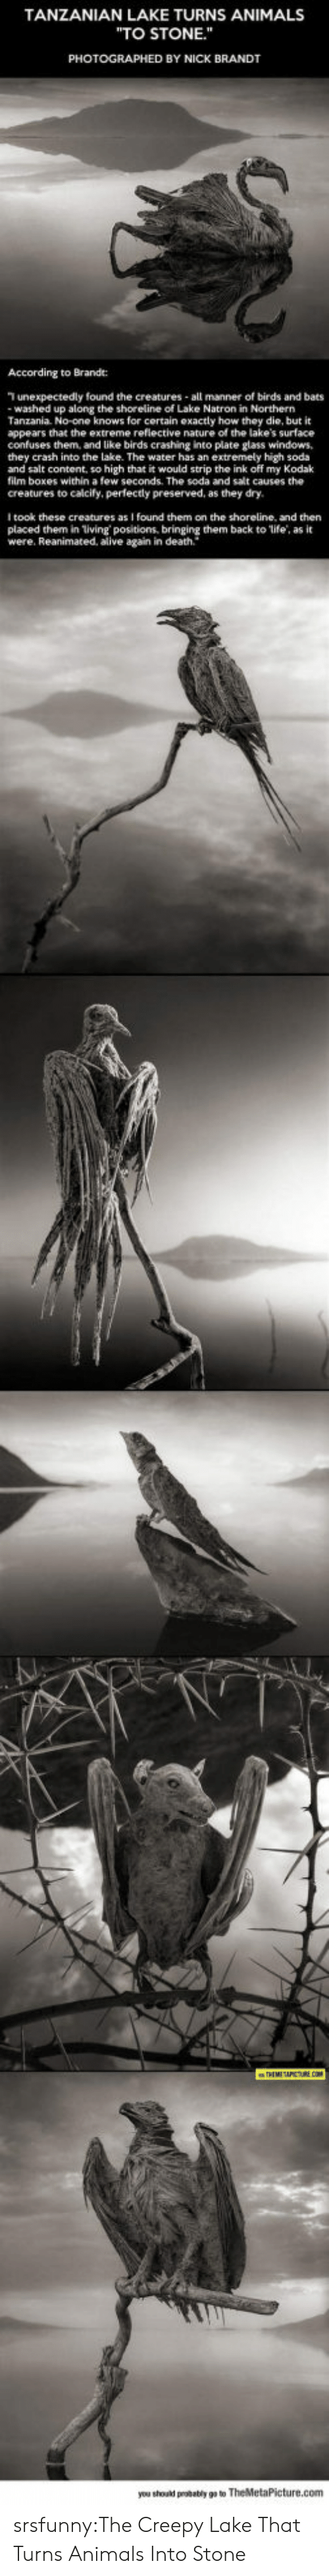 """tanzania: TANZANIAN LAKE TURNS ANIMALS  """"TO STONE.""""  PHOTOGRAPHED BY NICK BRANDT  According to Brande:  T unexpectedly found the creatures all manner of birds and bats  washed up along the shoreline of Lake Natron in Northern  Tanzania. No-one knows for certain exactly how they die, but it  appears that the extreme refiective nature of the lake's surface  confuses them, and like birds crashing into plate glass windows,  they crash into the lake. The water has an extremely high soda  and salt content, so high that it would strip the ink off my Kodak  film boxes within a few seconds. The soda and salt causes the  creatures to calcify, perfectly preserved, as they dry.  I took these creatures as I found them on the shoreline, and then  placed them in living positions, bringing them back to life, as it  were. Reanimated, alive again in death. srsfunny:The Creepy Lake That Turns Animals Into Stone"""